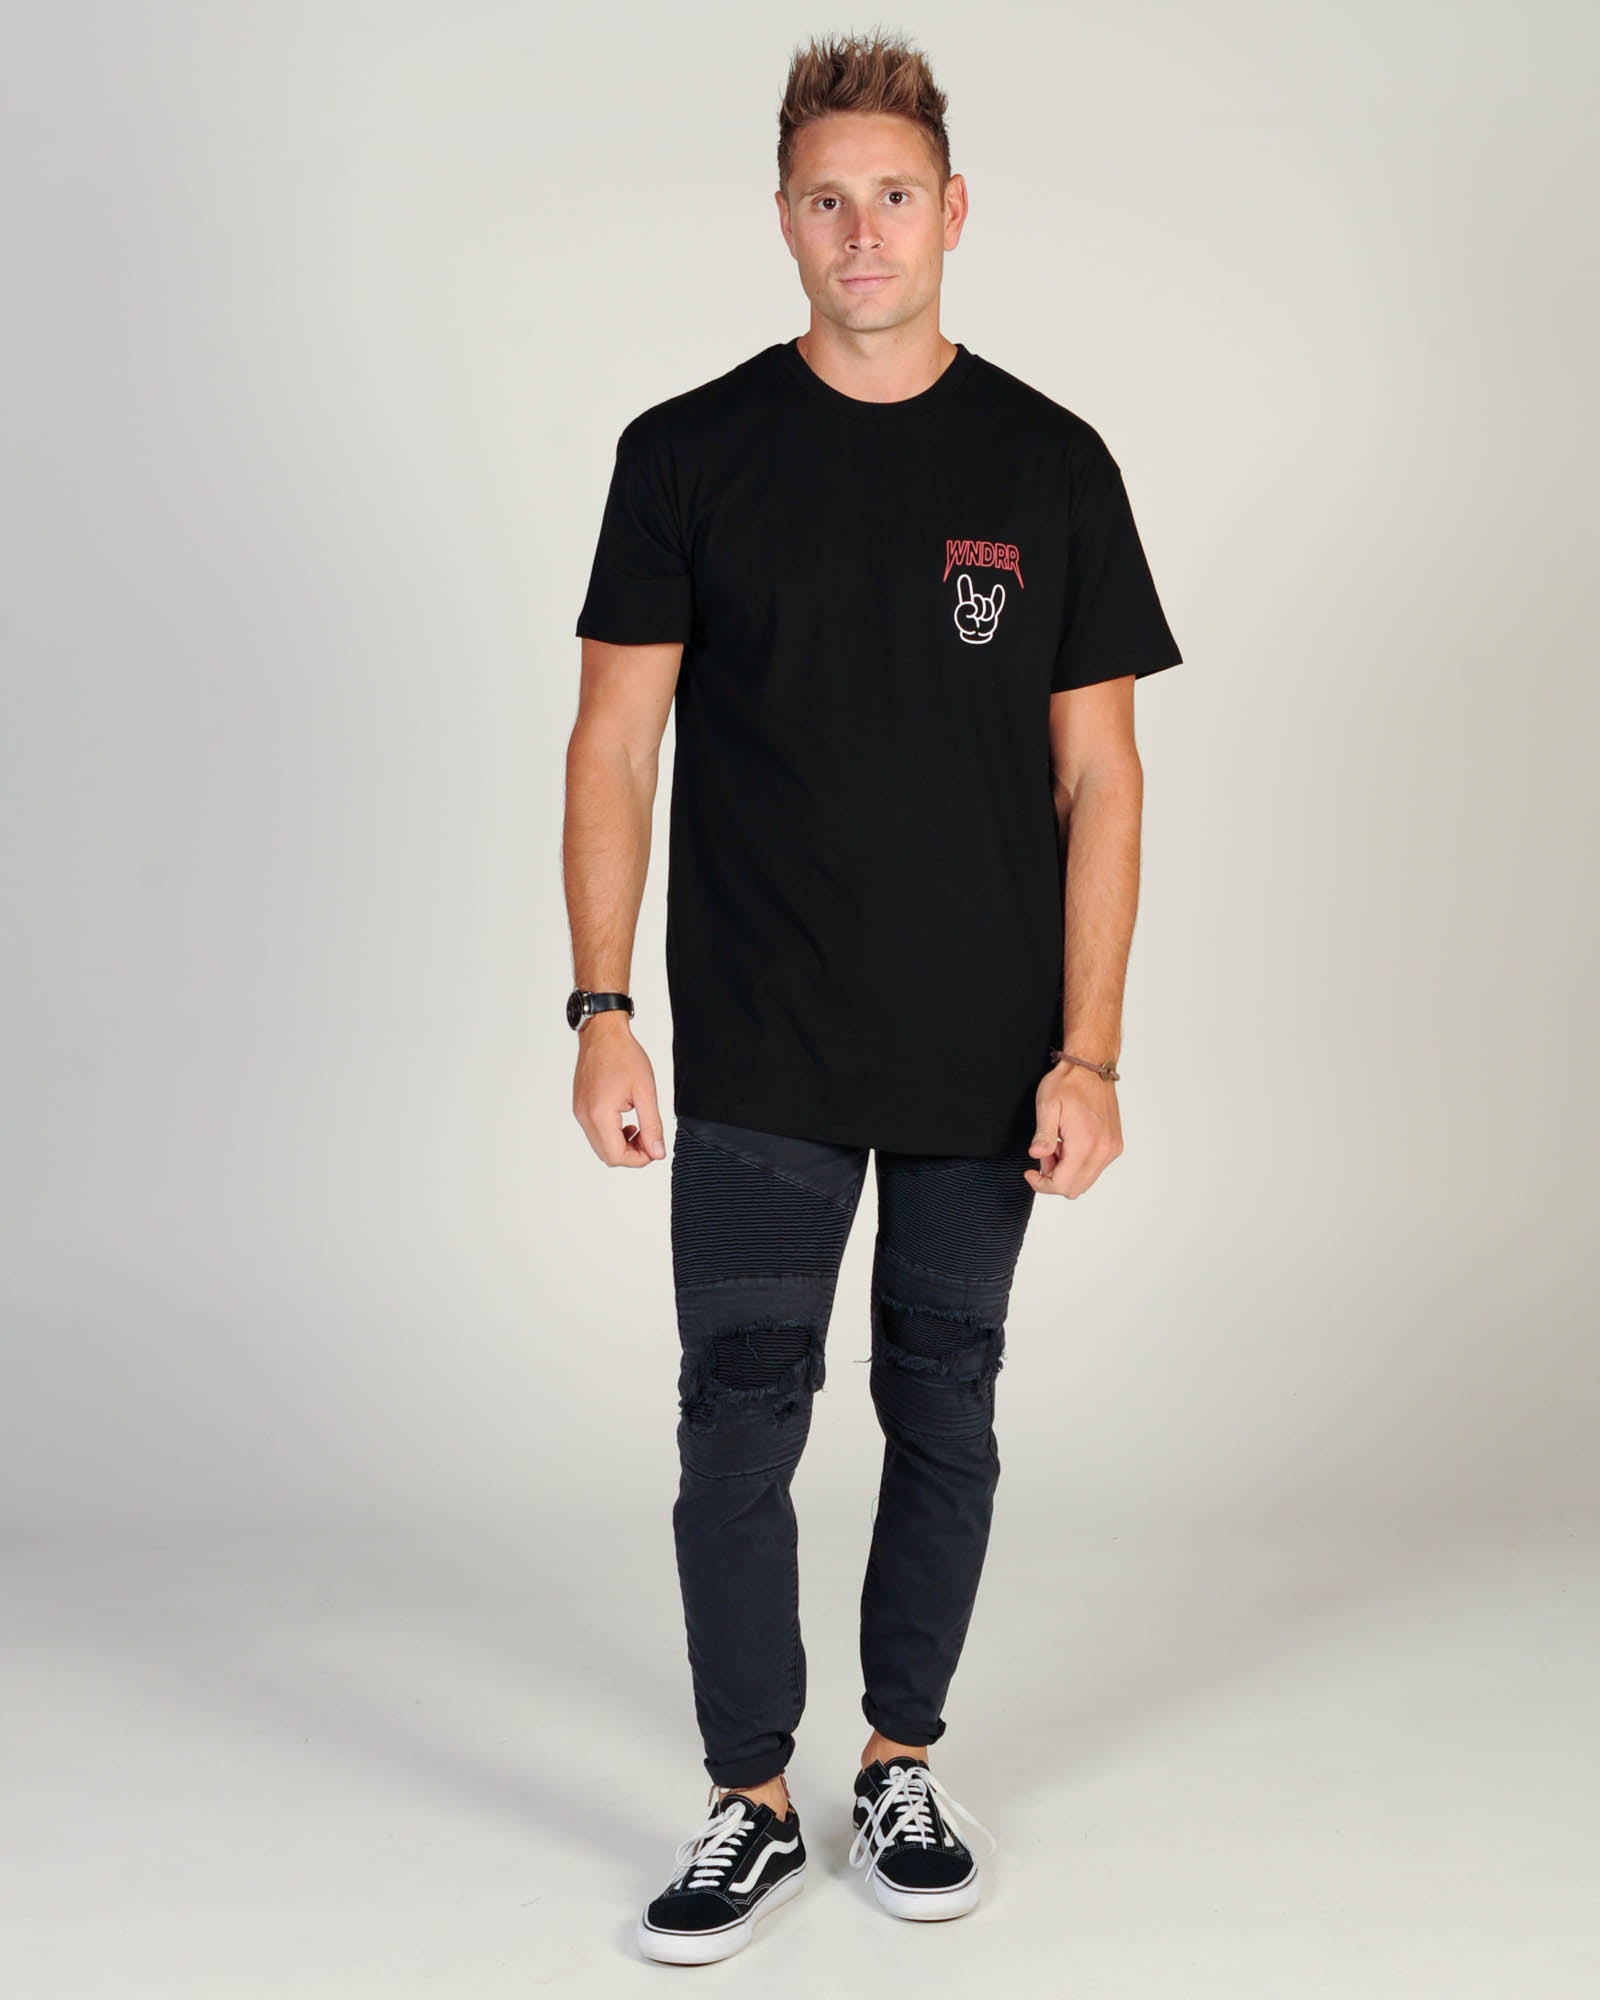 Wndrr Rock On Custom Fit Tee - Black